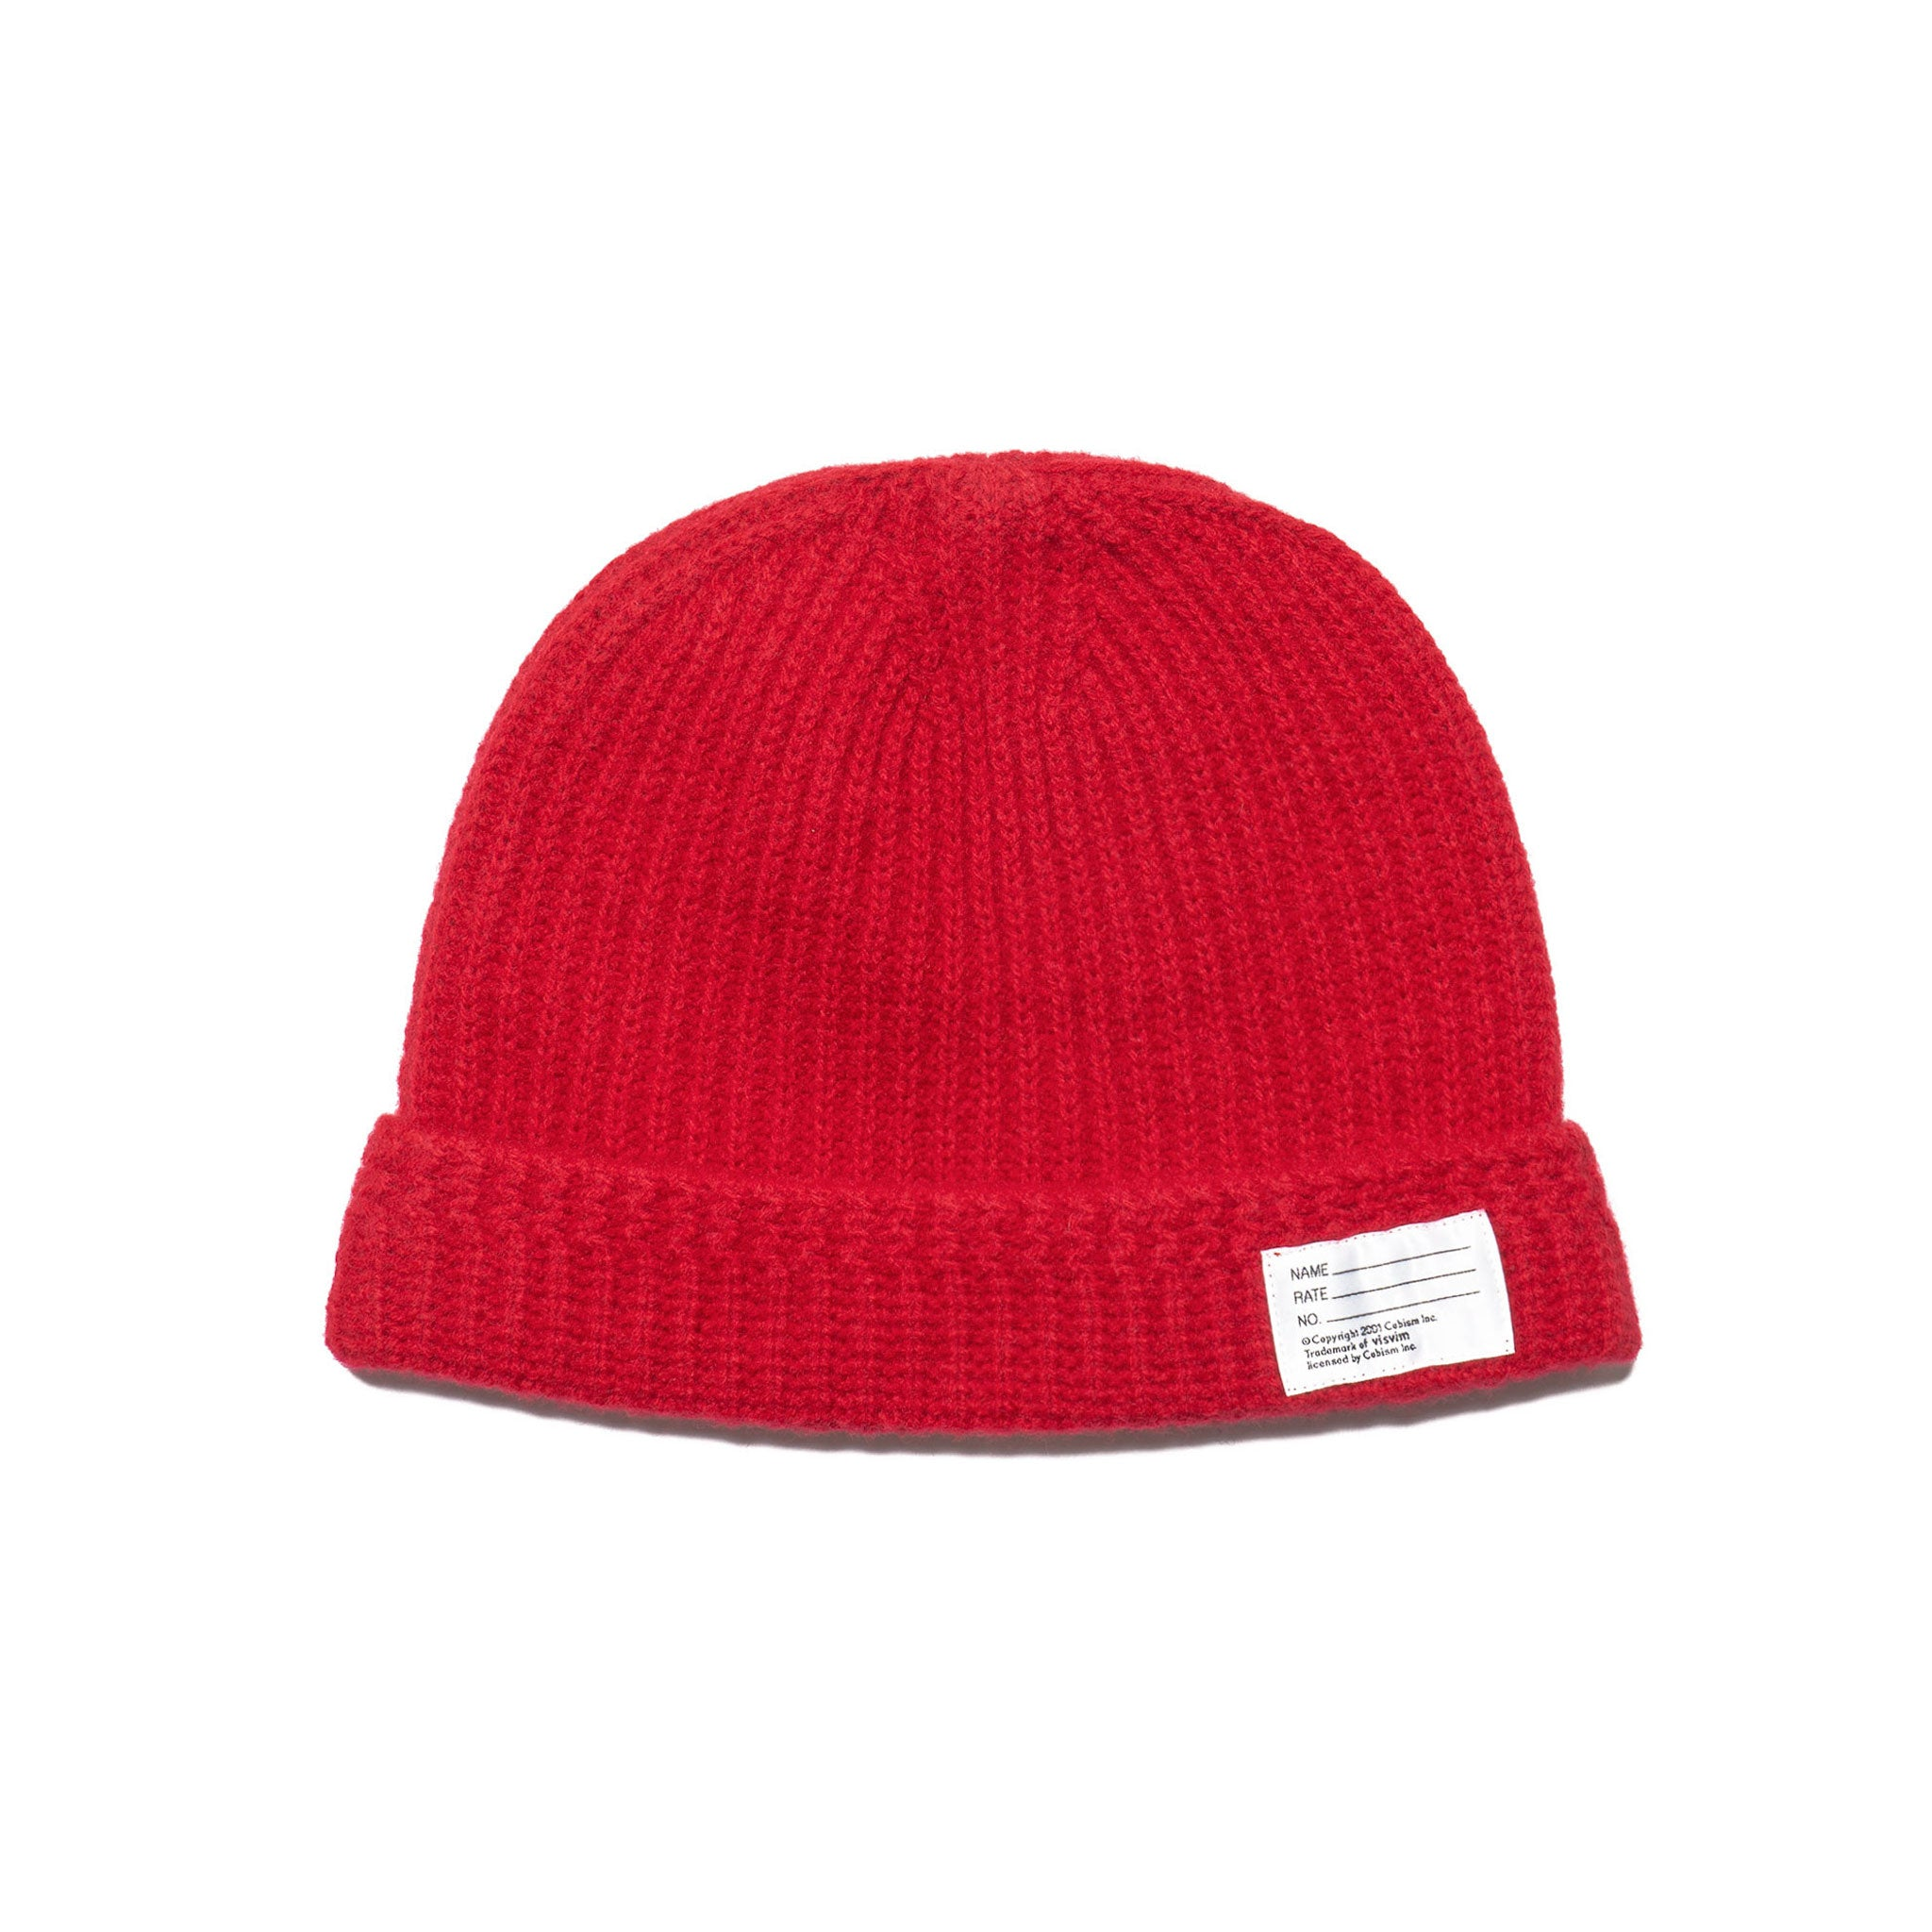 Knit Beanie (Wool) Red – HAVEN 7a840c2beb65